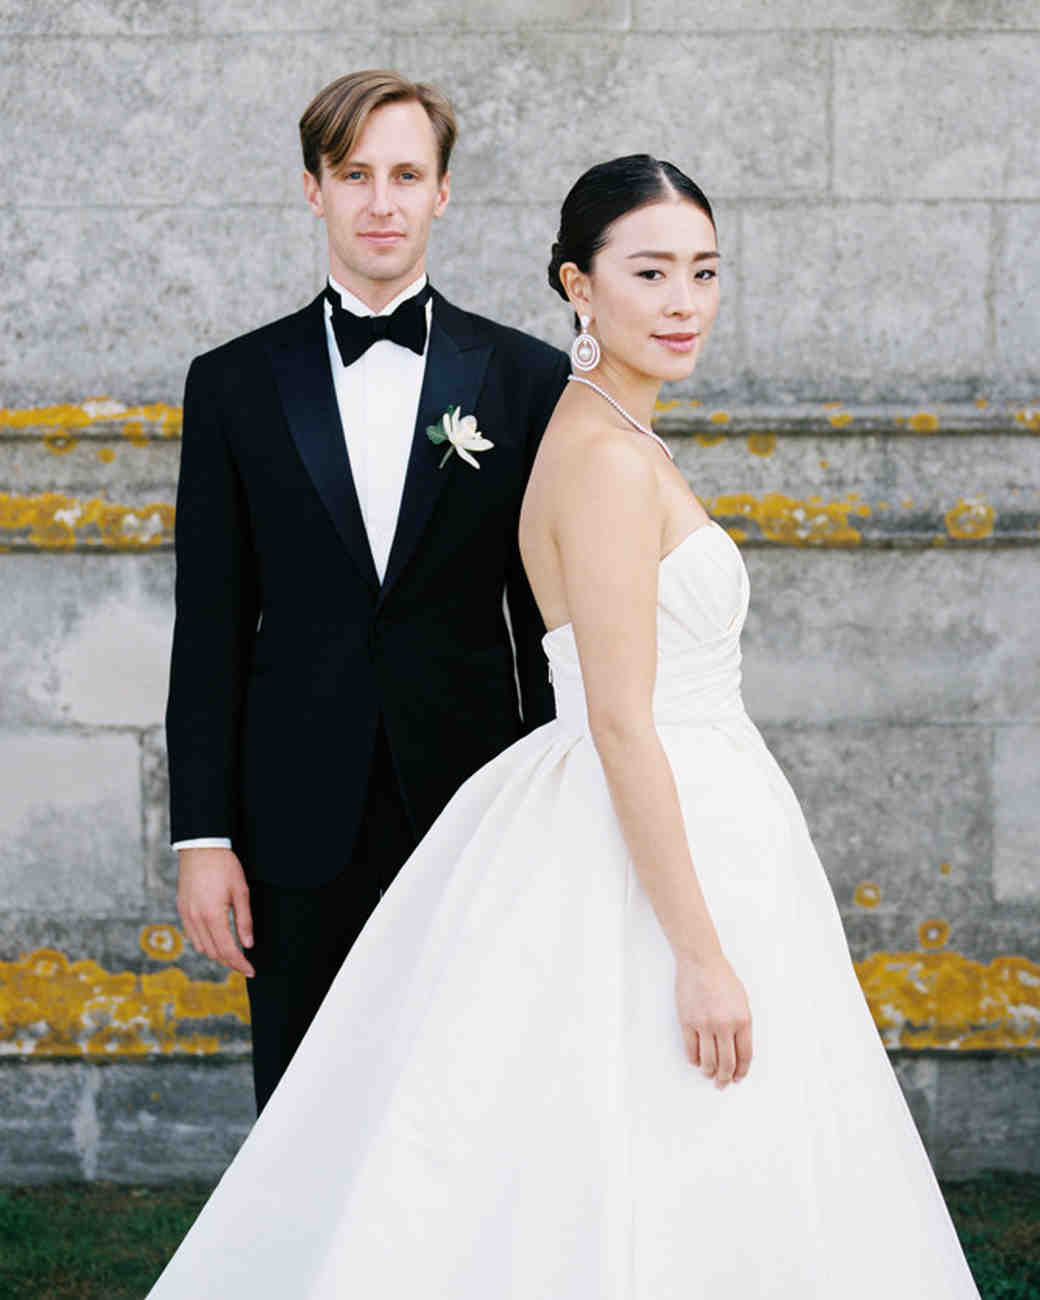 Wedding Attire Etiquette For Brides And Grooms Martha Stewart Weddings